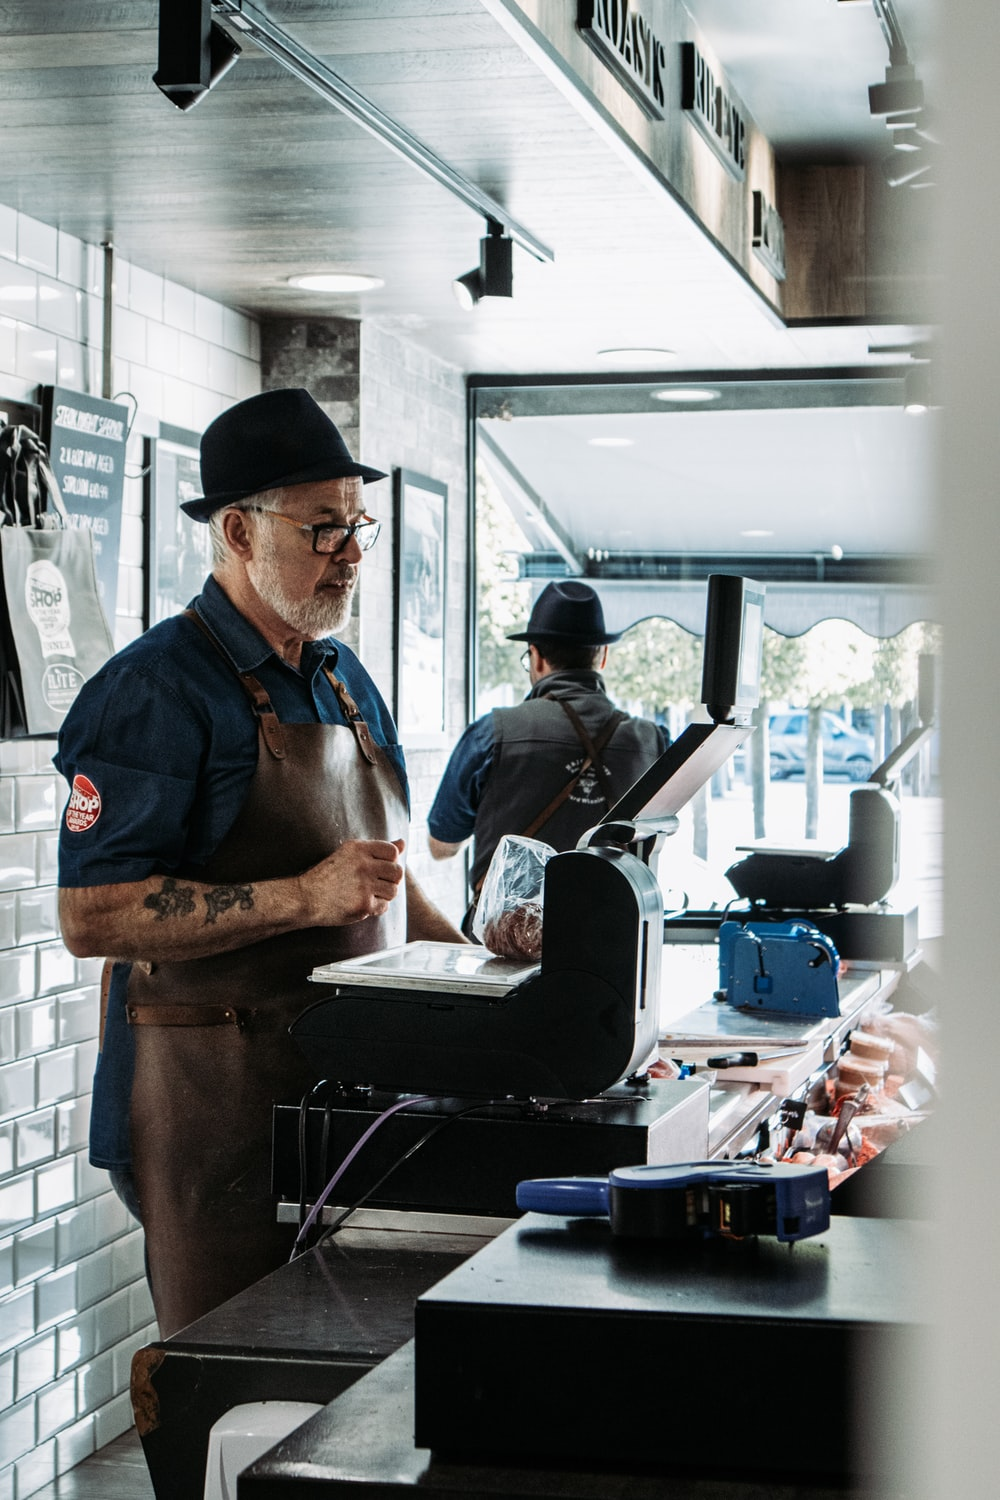 man in blue vest and black apron cooking